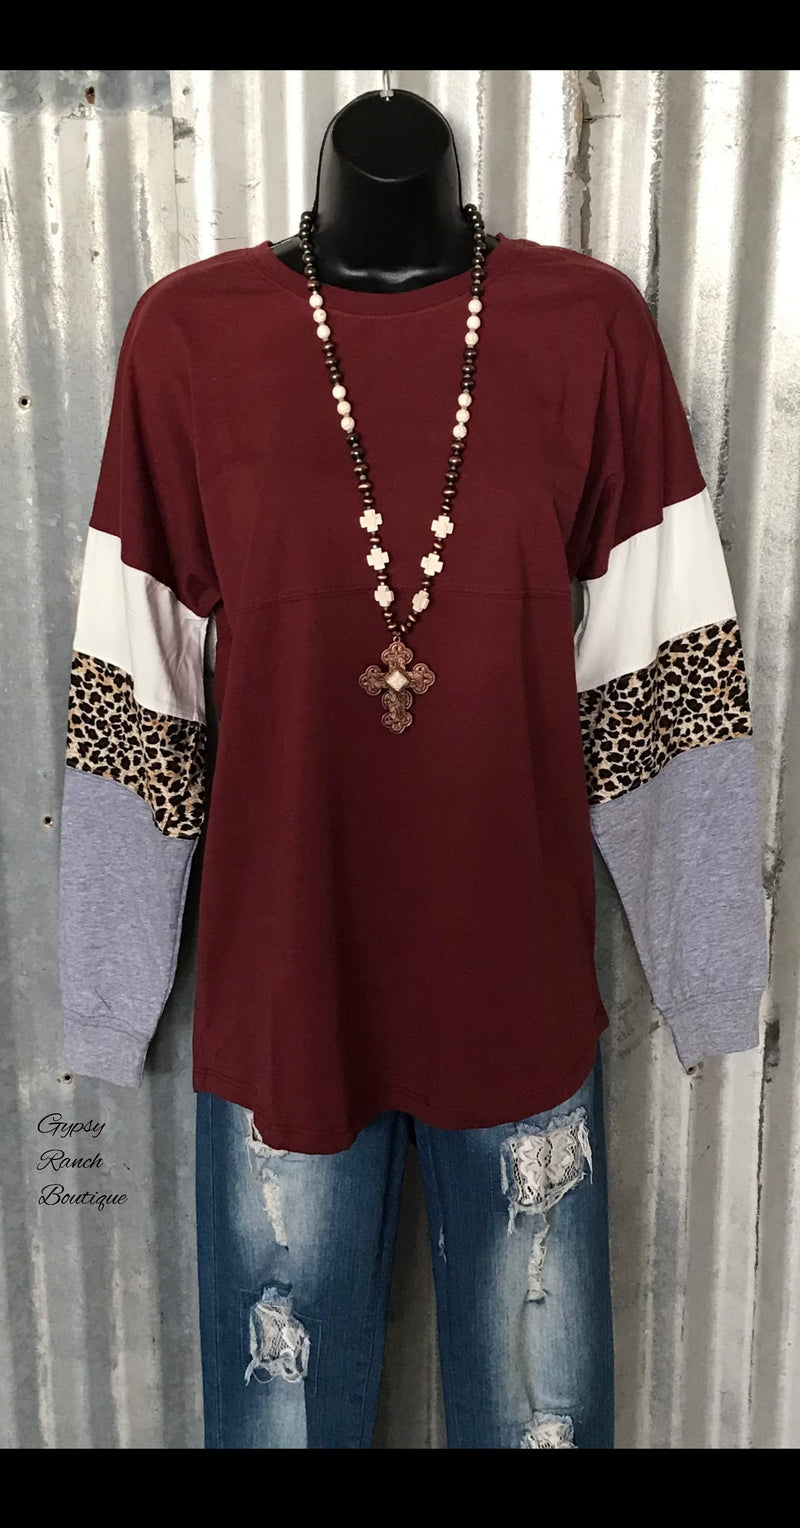 Yukon Maroon Leopard Top - Also in Plus Size